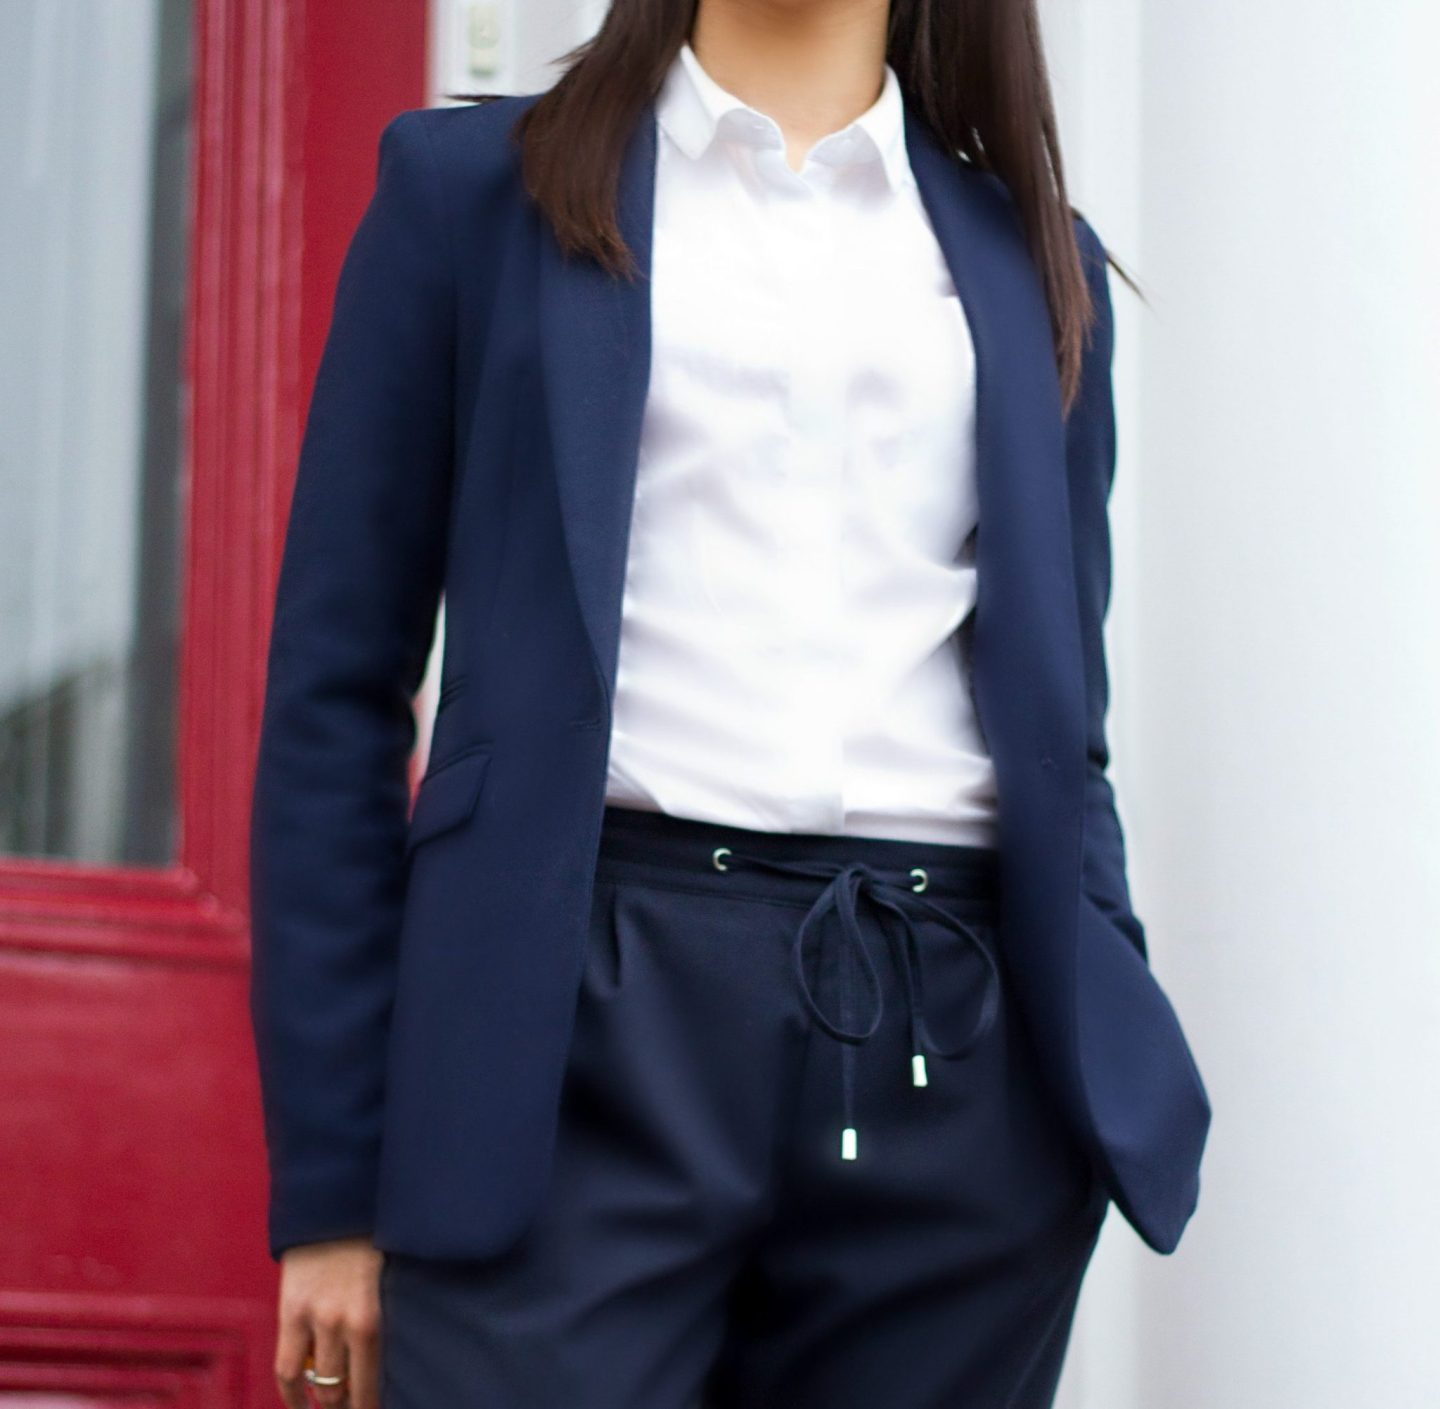 Corporate_Style_Story_Navy_Drawstring_Trousers_White_Shirt-Navy_Blazer_Outside_Red_Door_2212_3318